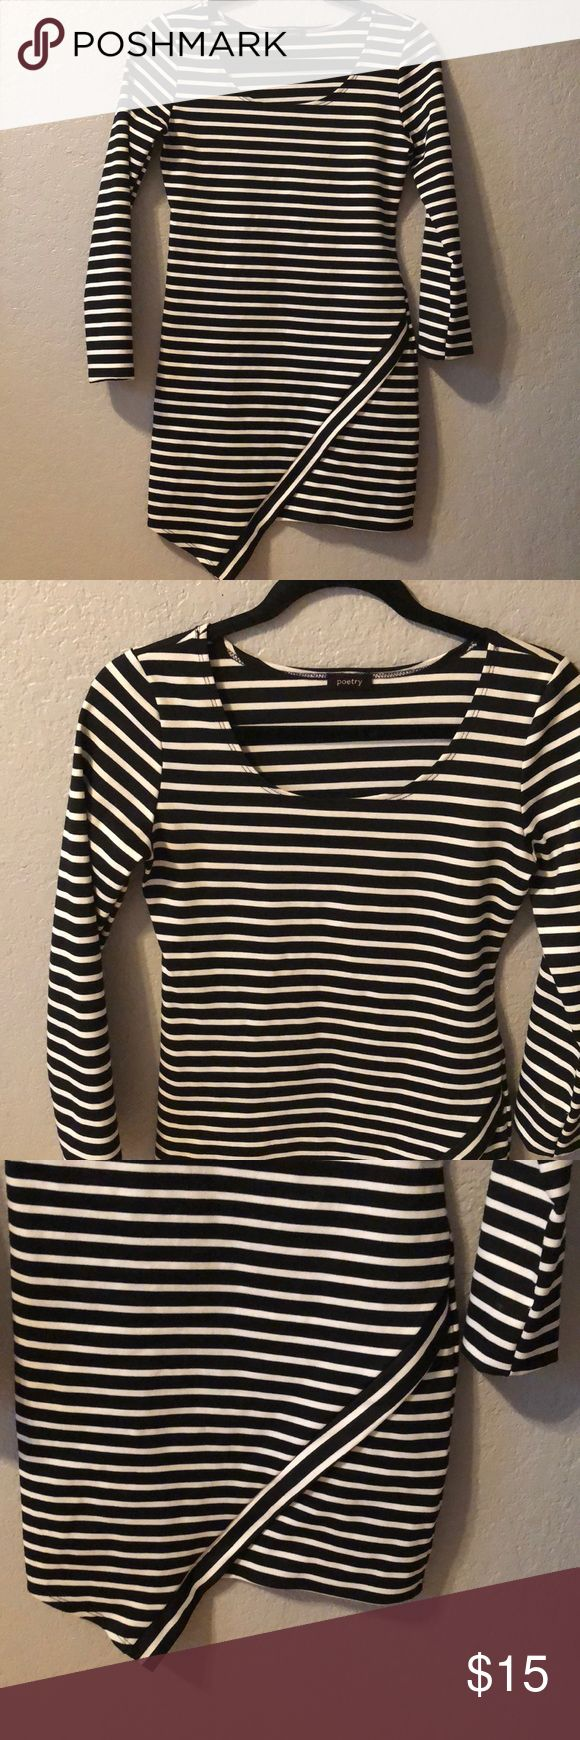 Black and white striped long sleeve dress Black and white striped long sleeve dress. Worn 2 times in amazing condition. Dresses